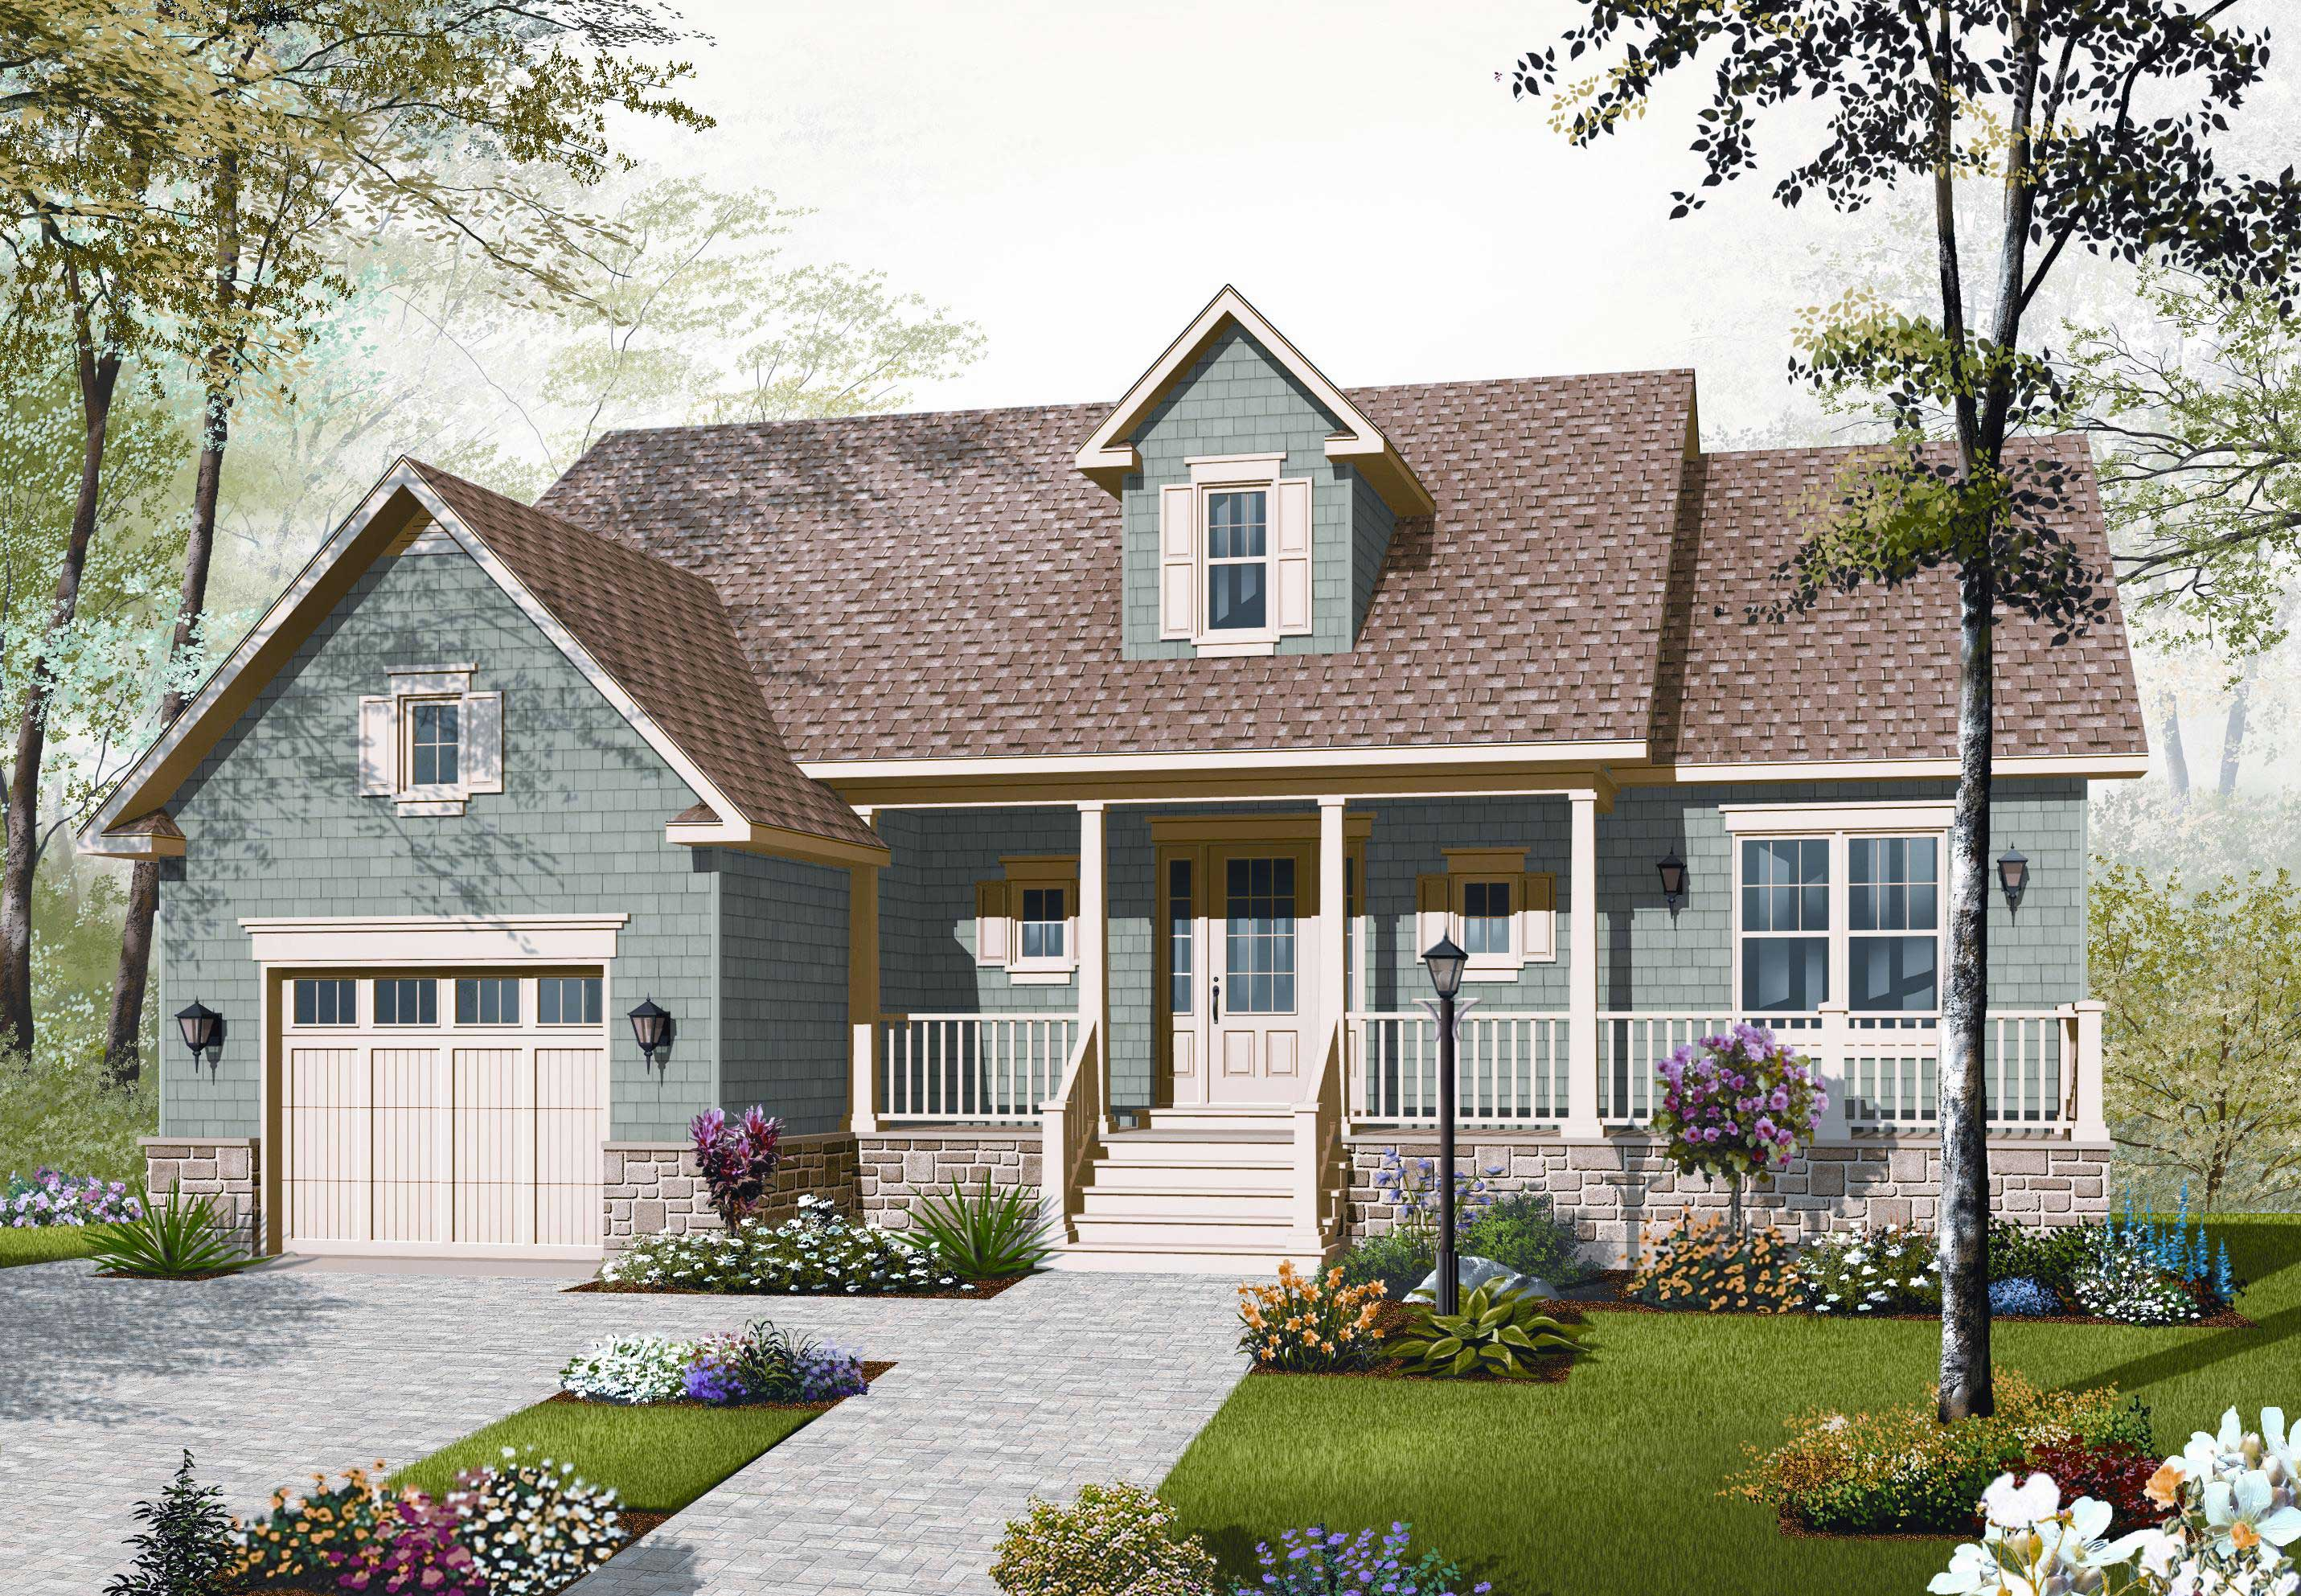 Country home plan 2 bedrms 1 baths 1344 sq ft 126 1092 for Garage style homes